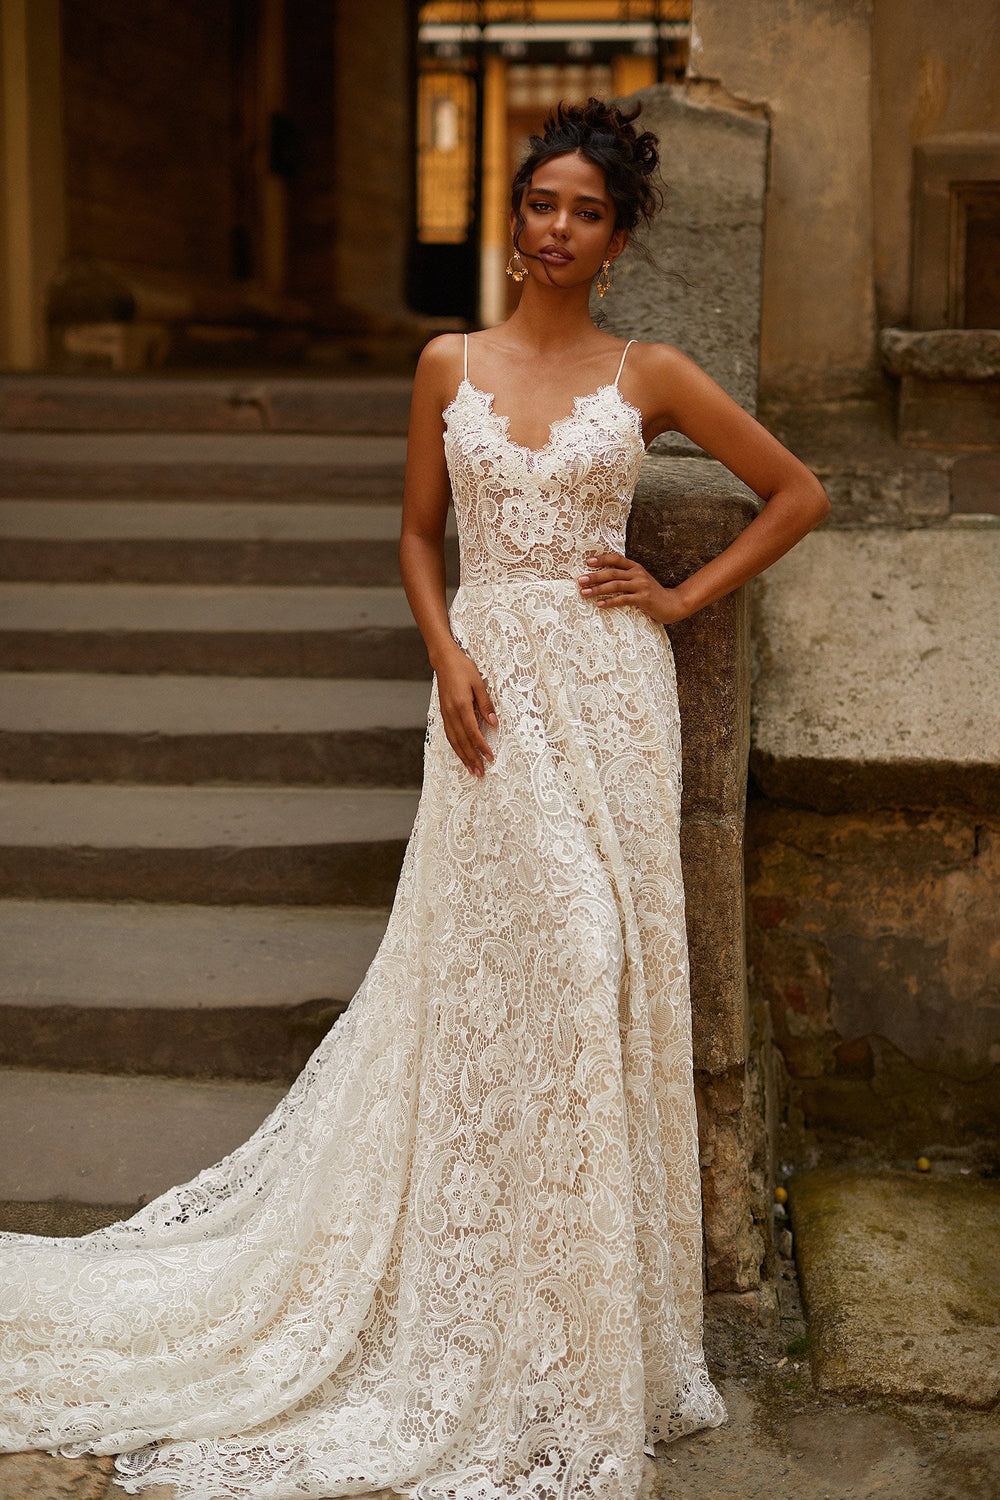 A&N Pearla - Lace Boho Bridal Gown with V-Neck & Low Back with Train